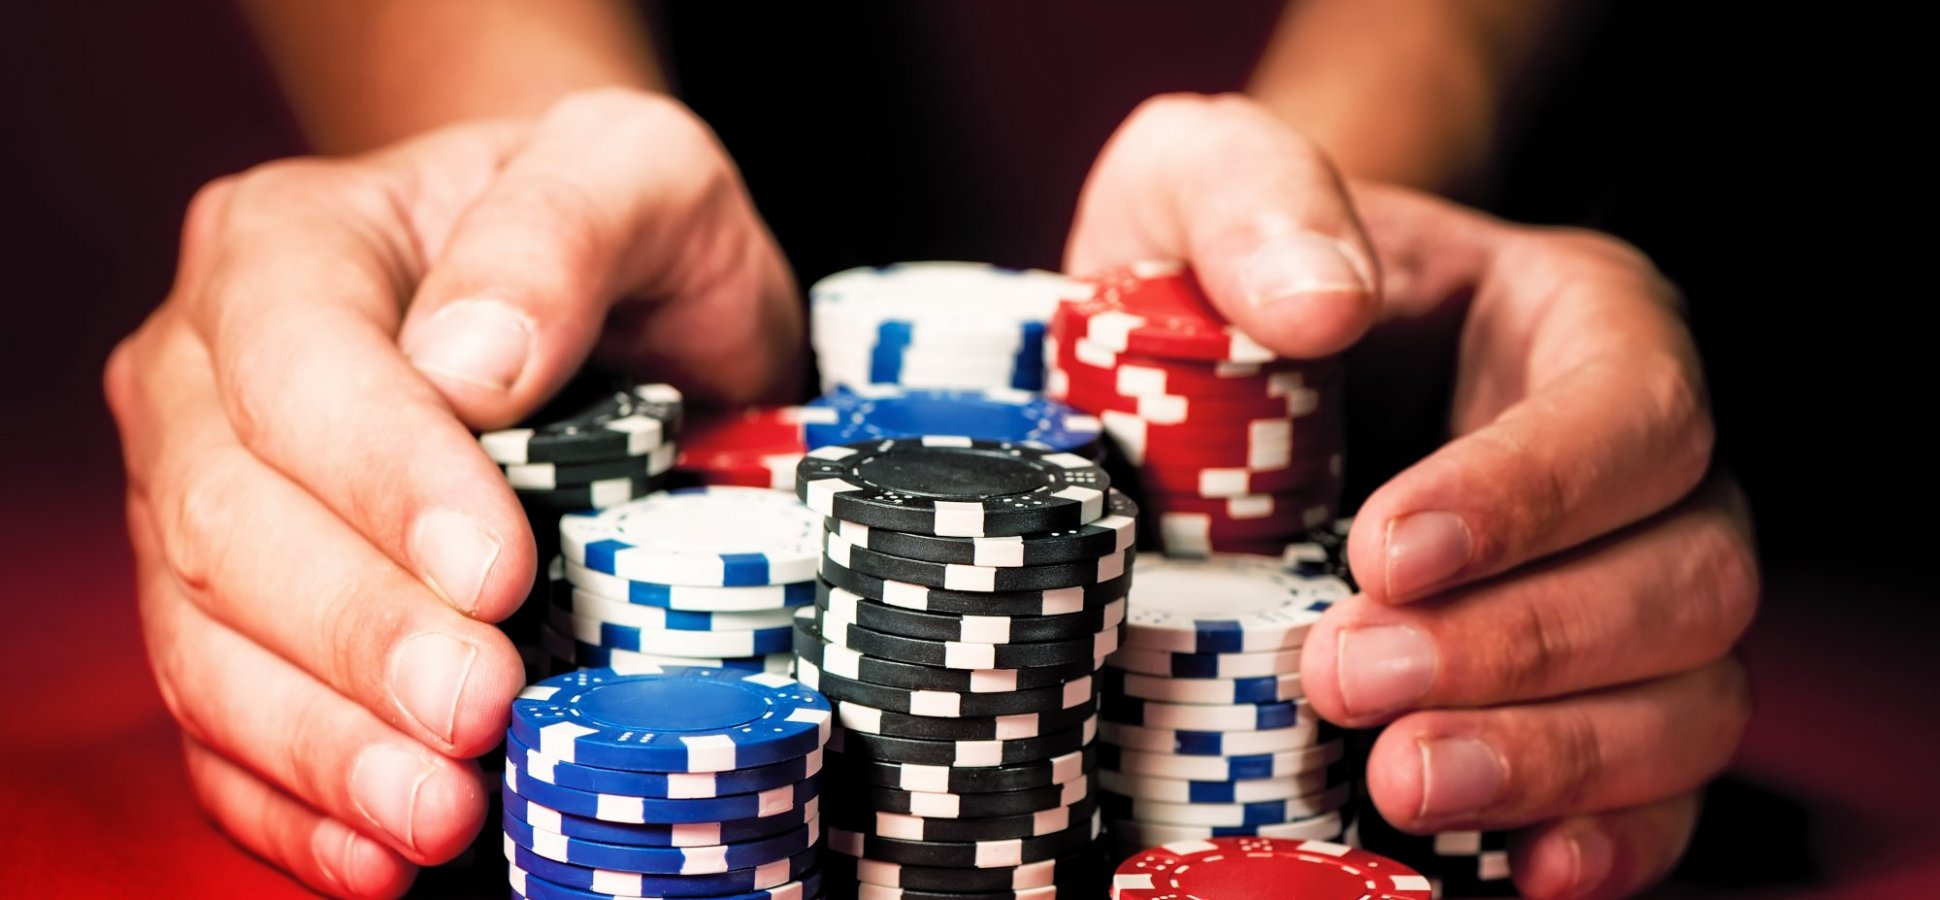 3 Reasons Why You Shouldn't Bet Your Business On A Platform